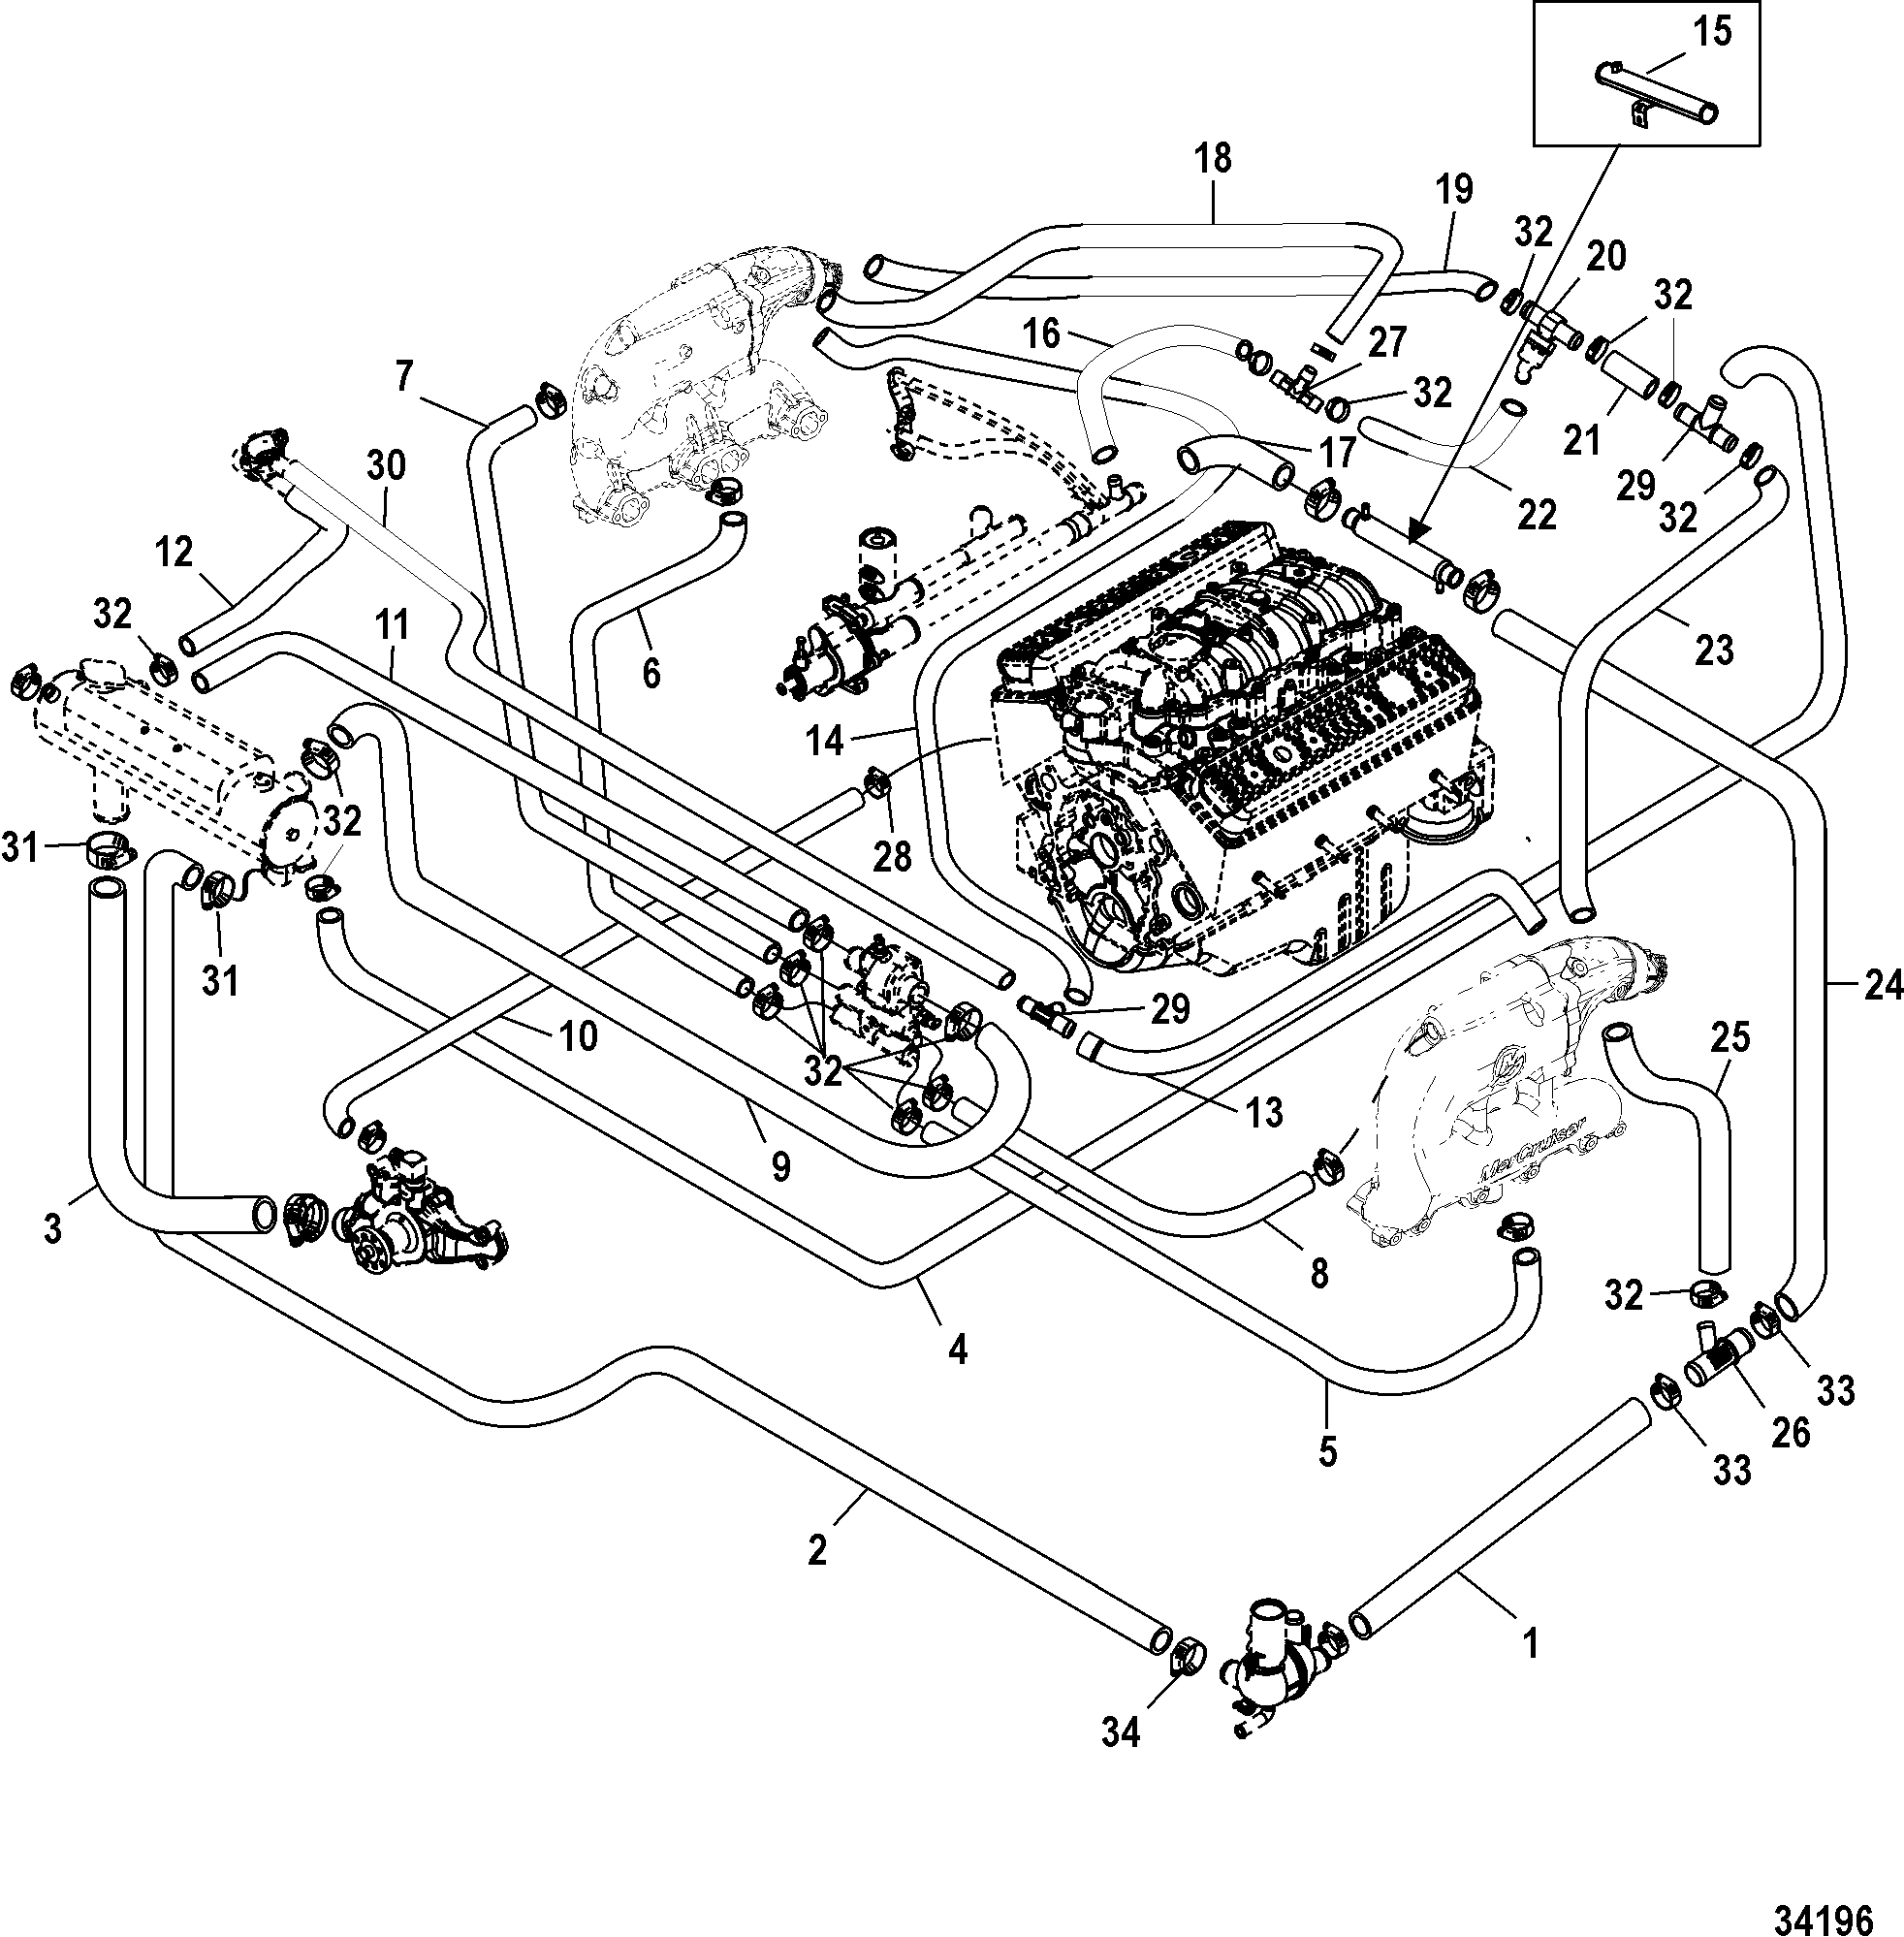 T4426185 Firing order besides 87 Dodge Dakota Engine Diagram moreover Parts of the cooling system fitted to engine for engine with engine identification characters bkd azv as well Viewtopic additionally 1141540 Help Part No For 6 300 4 9l Push Rod Cover. on 5 cylinder distributor